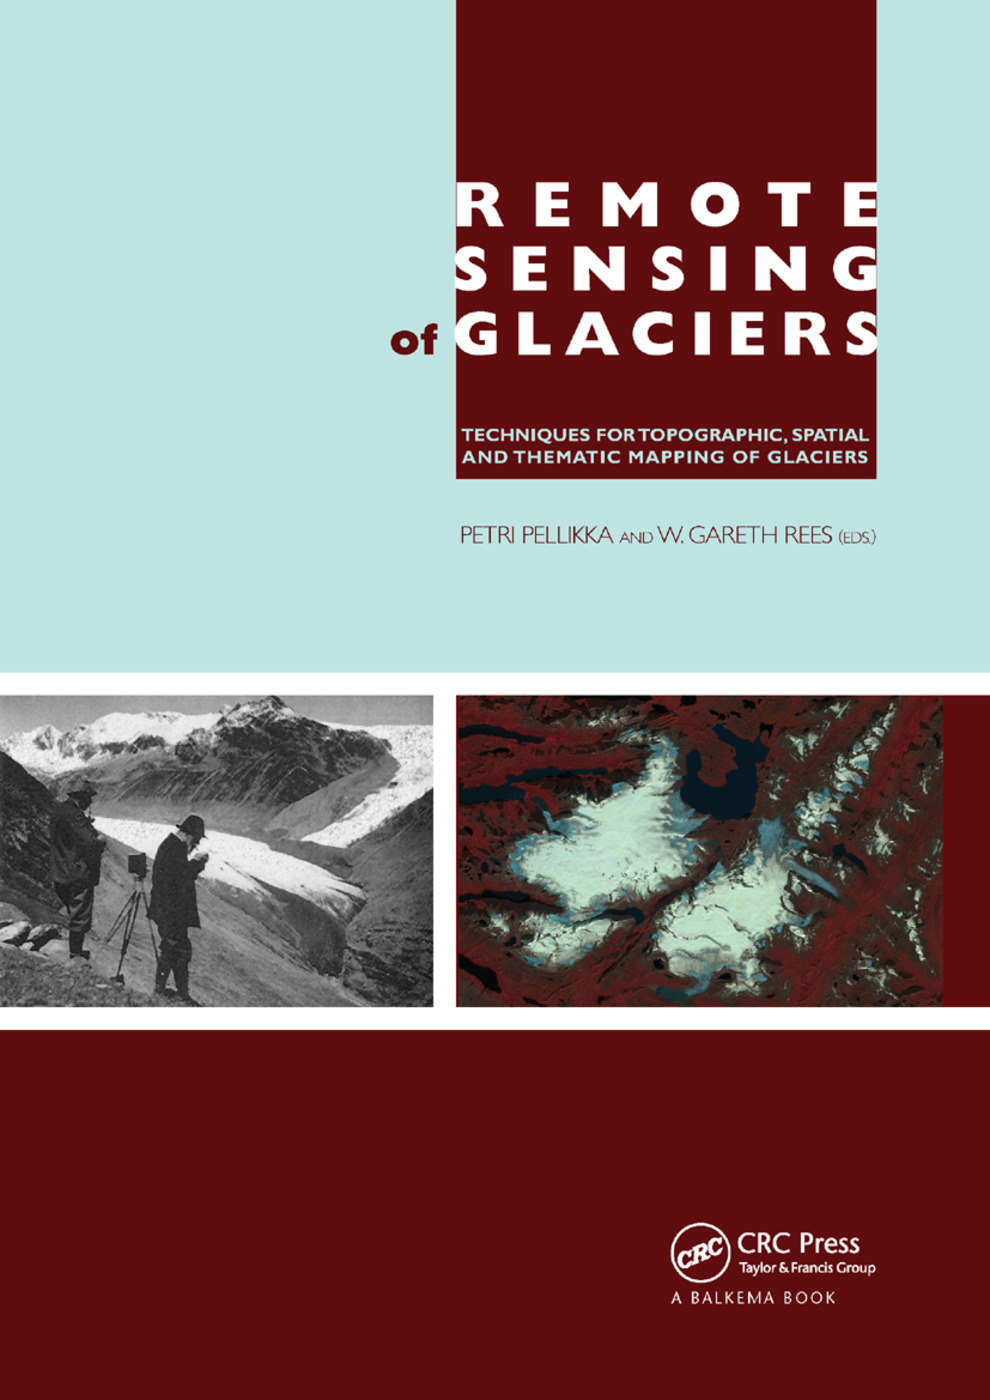 Remote Sensing of Glaciers: Techniques for Topographic, Spatial and Thematic Mapping of Glaciers book cover